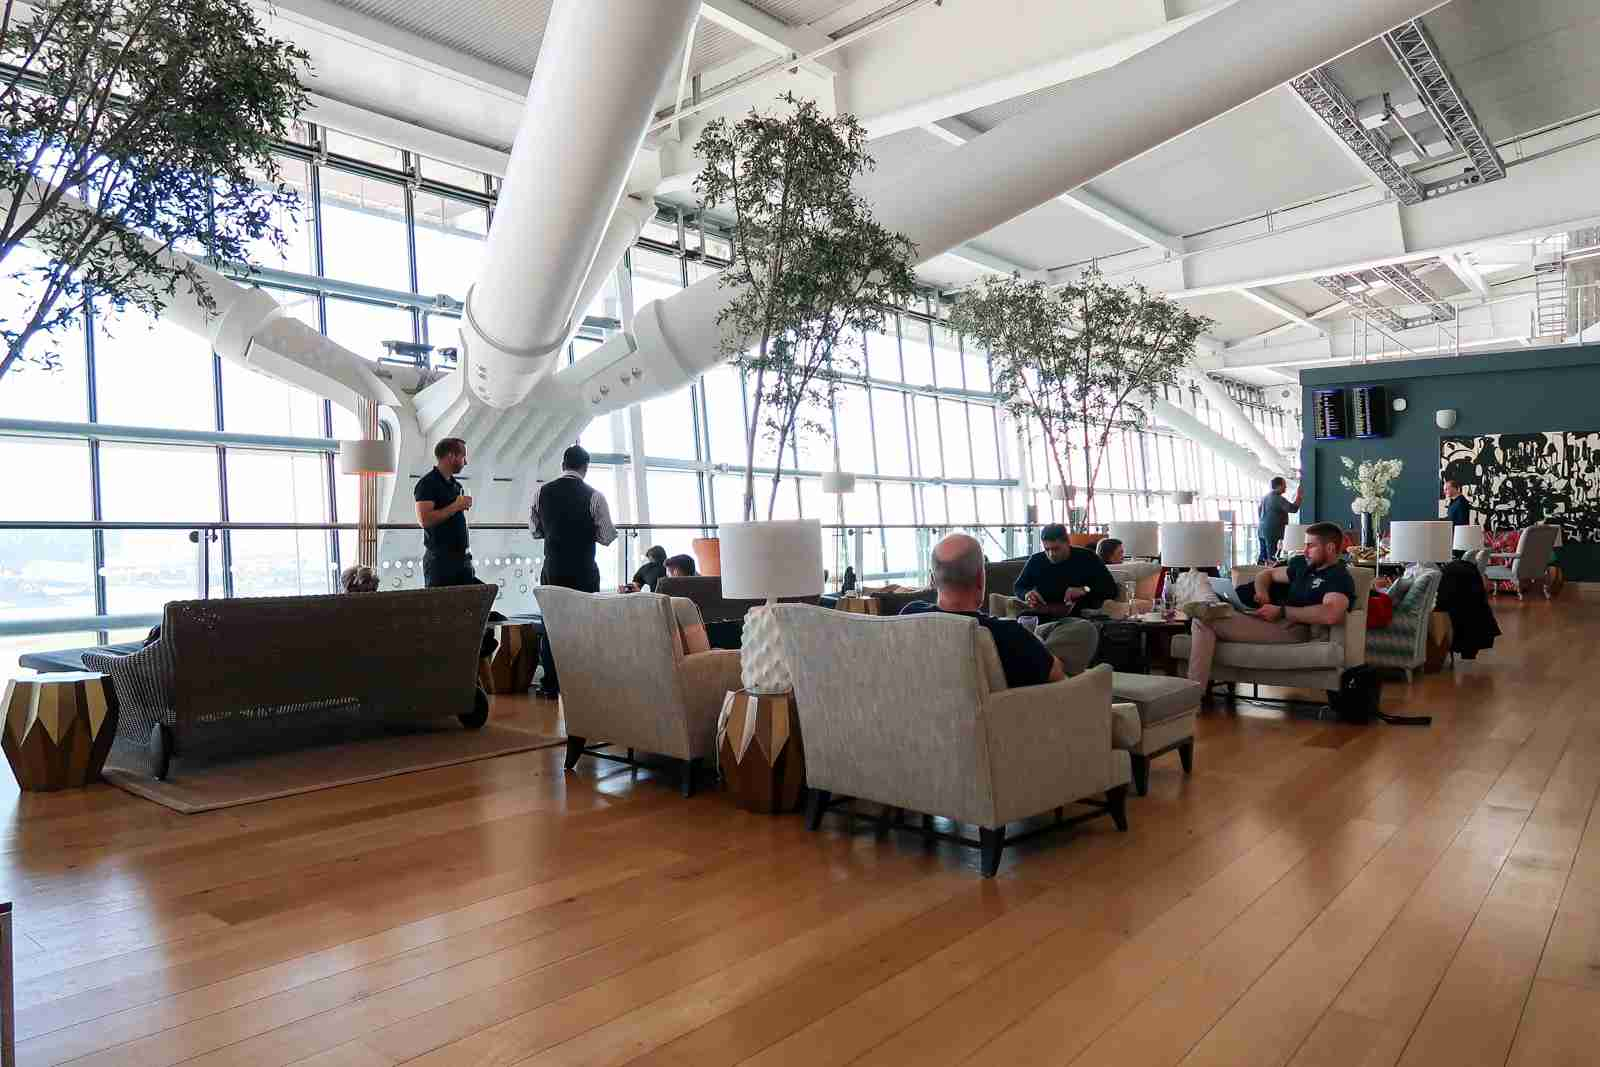 British Airways Concorde Room Lounge (Photo by Daniel Ross/The Points Guy)